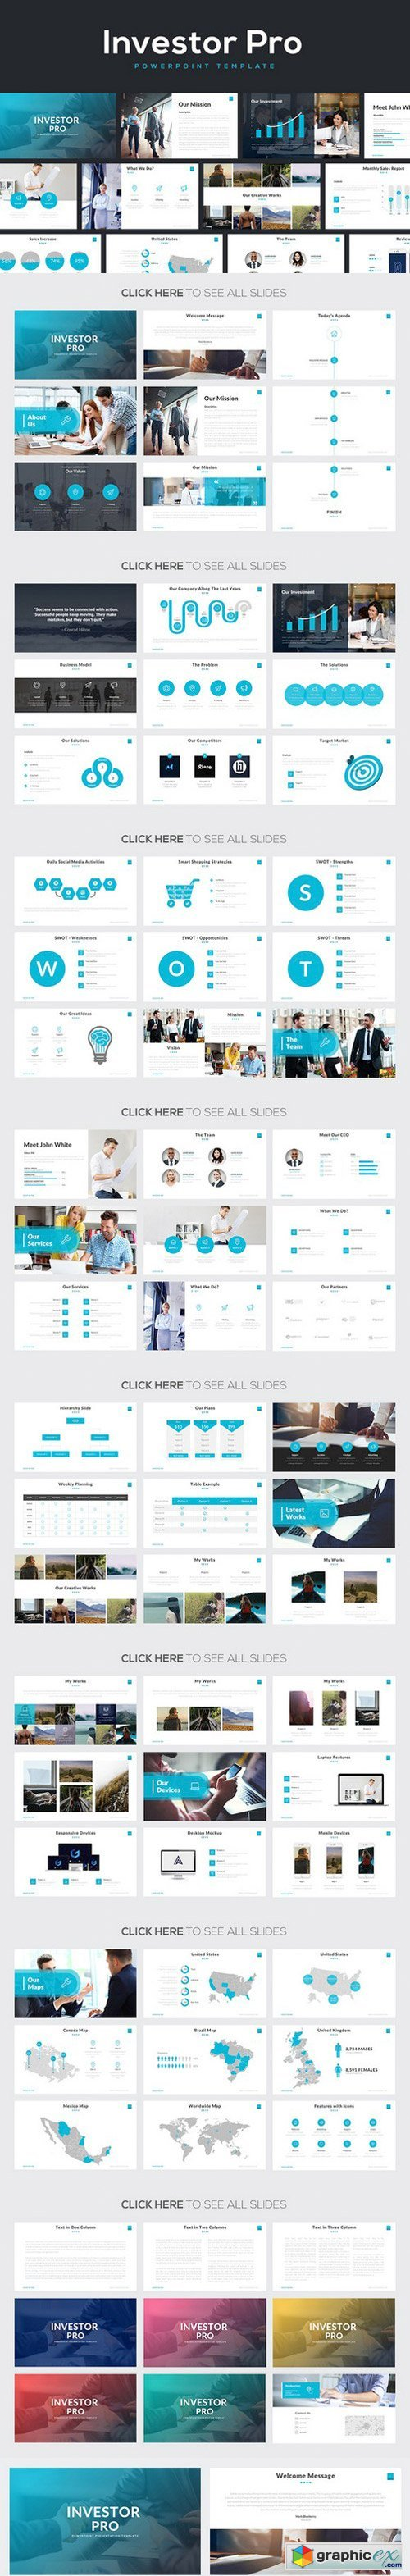 investor pro powerpoint template | layout. | pinterest | investors, Presentation templates